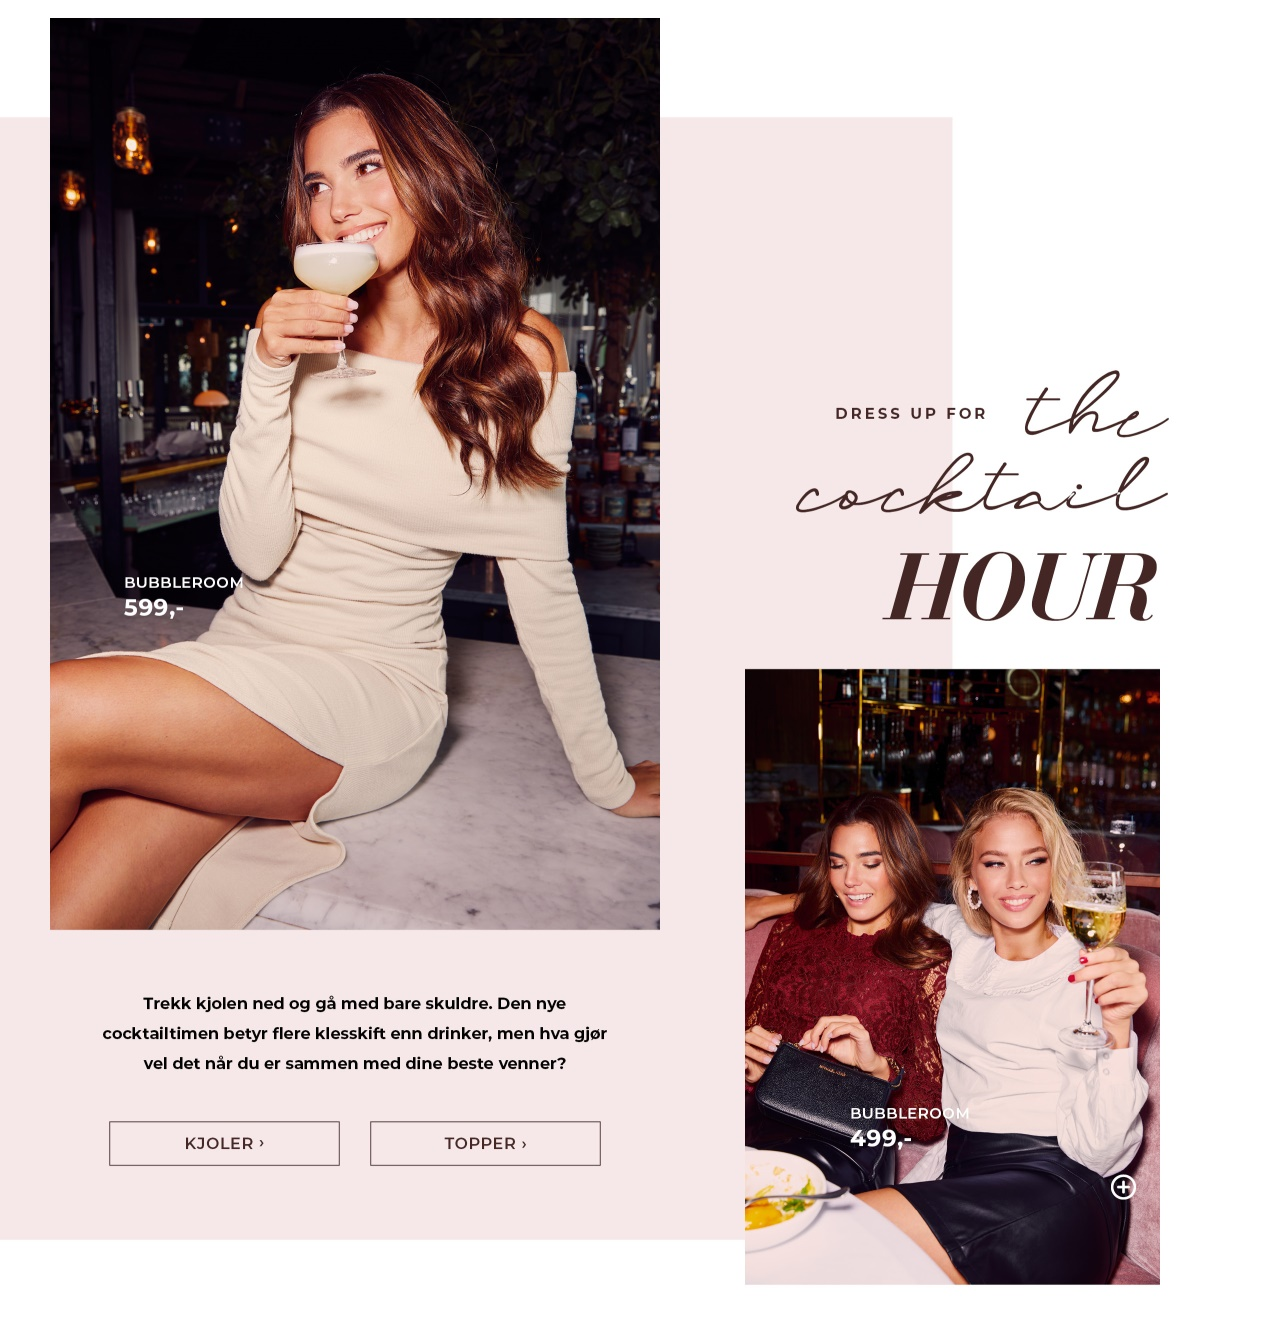 Dress up for the cocktail hour - Shop her